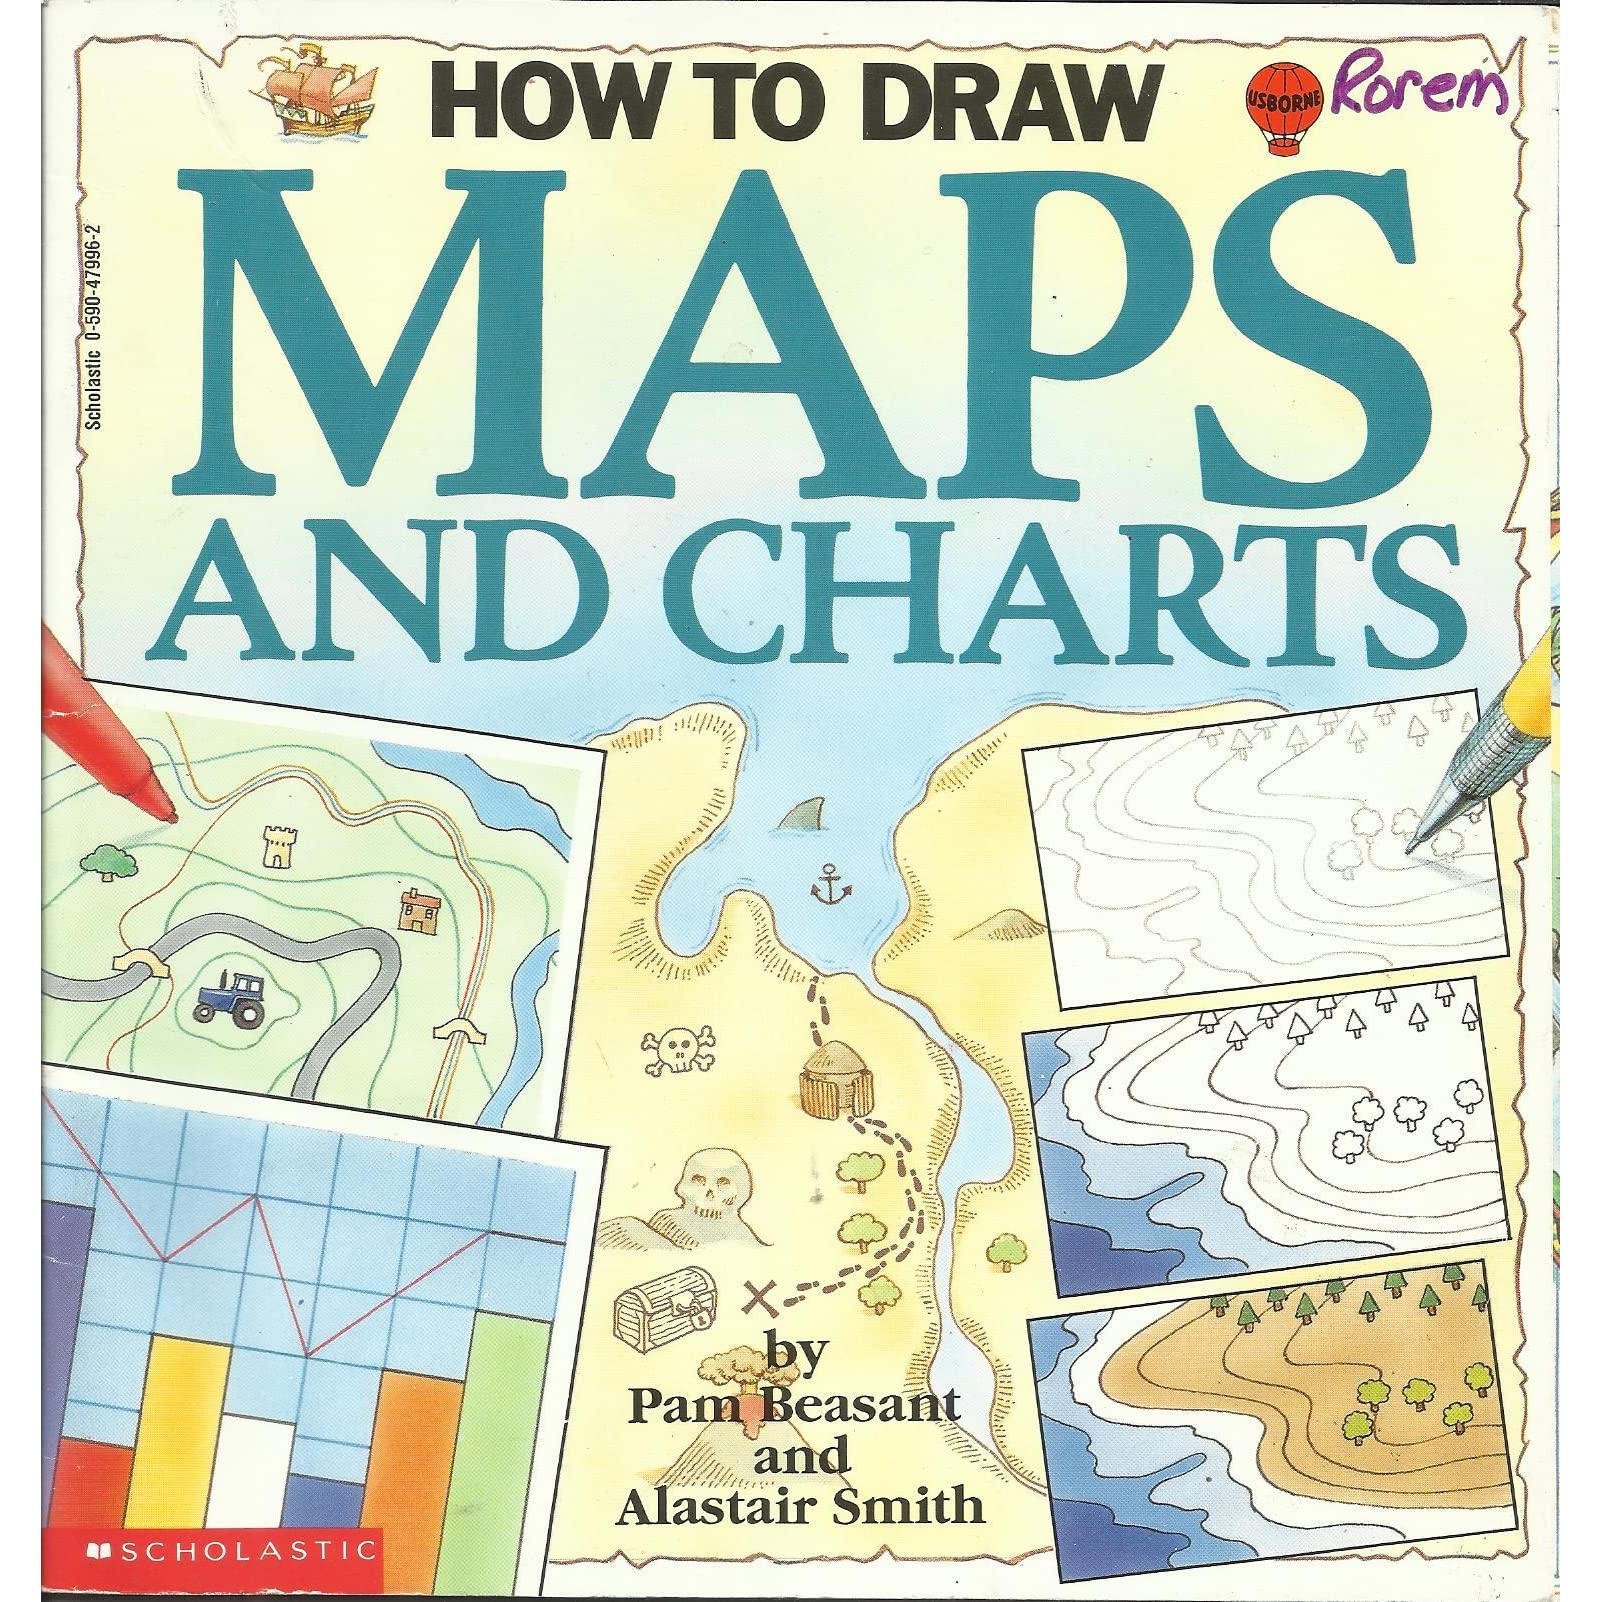 How to Draw Maps and Charts by Pam Beasant Scholastic Maps on templar maps, paradox interactive maps, amazon maps, preschool teaching curriculum maps, brain pop maps, visual listening maps, rand mcnally maps, harcourt brace maps, lonely planet maps, teaching preschoolers about maps, world atlas physical maps, enchanted learning maps, houghton mifflin maps, herff jones maps, northern woodlands maps, hubbard scientific maps, science maps, american bible society maps, knowledge quest maps, mcgraw hill maps,